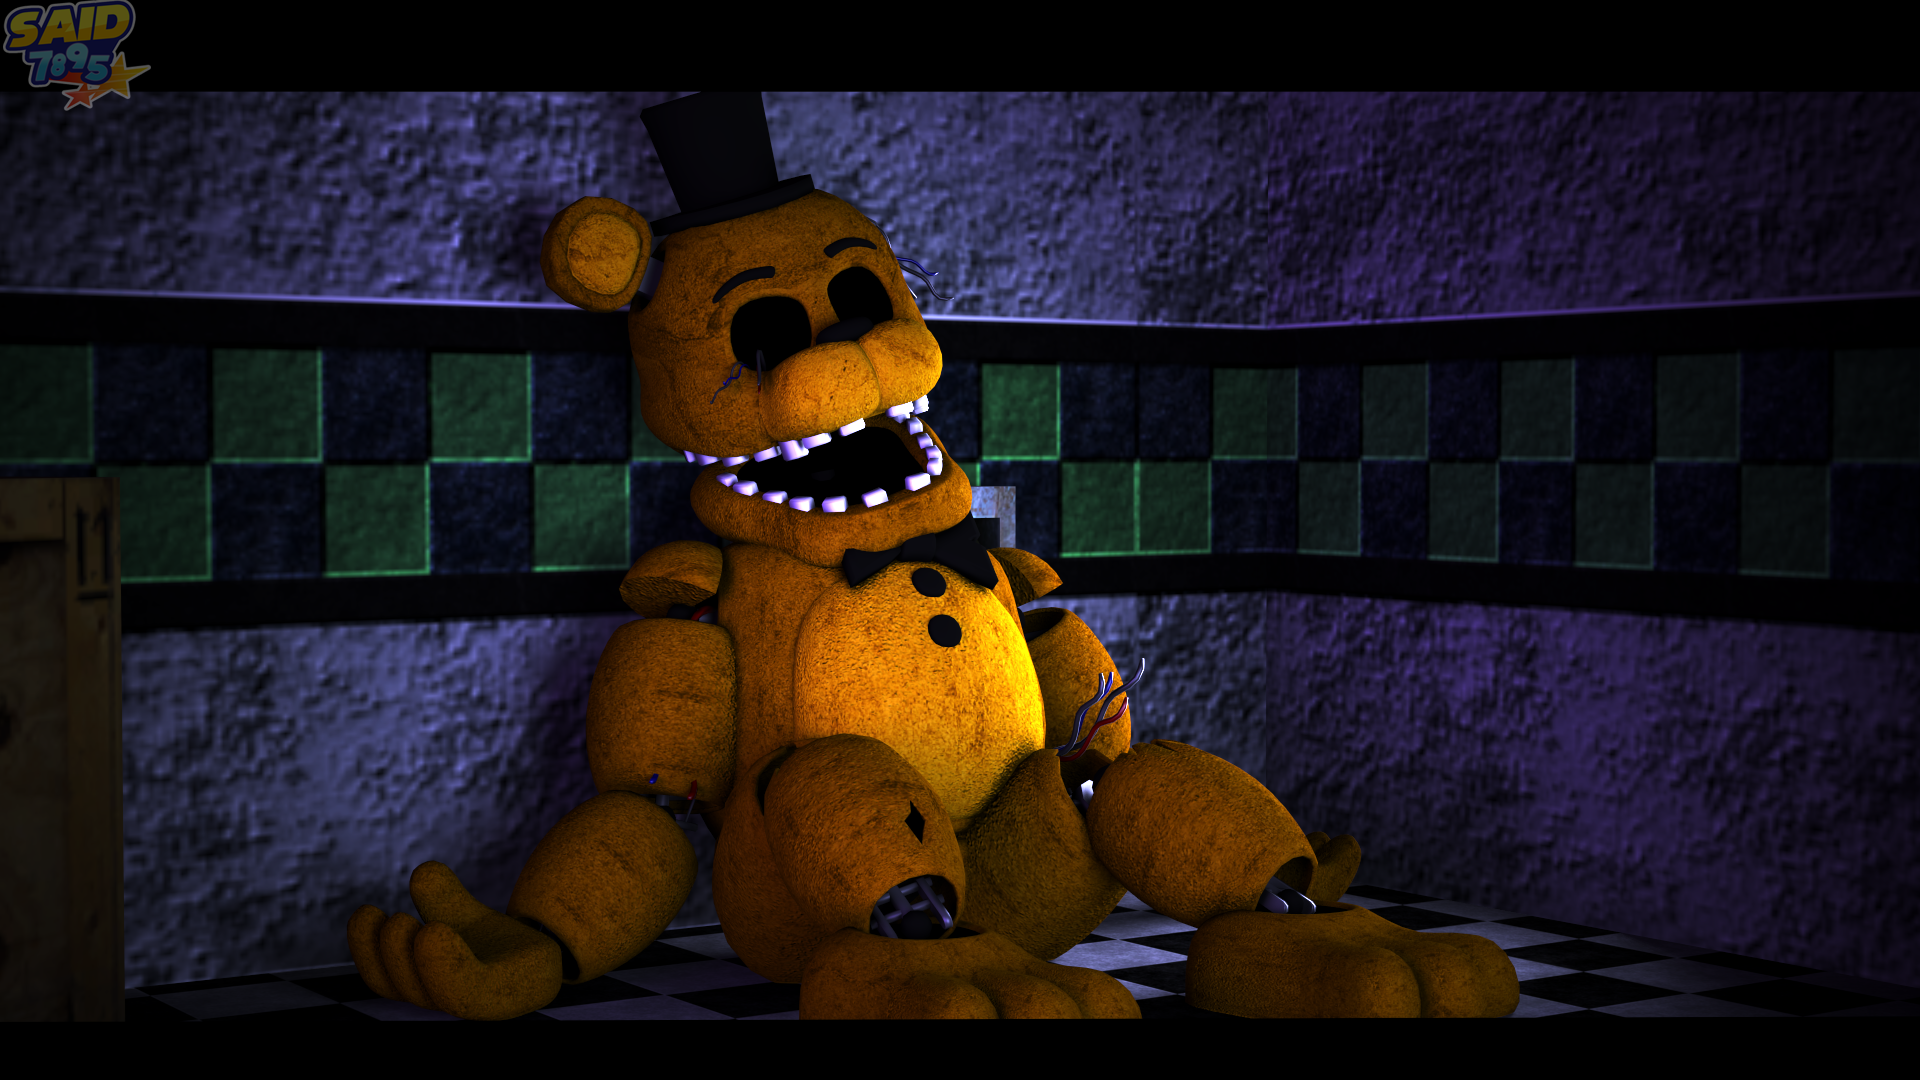 Withered Golden Freddy by said7895 1920x1080